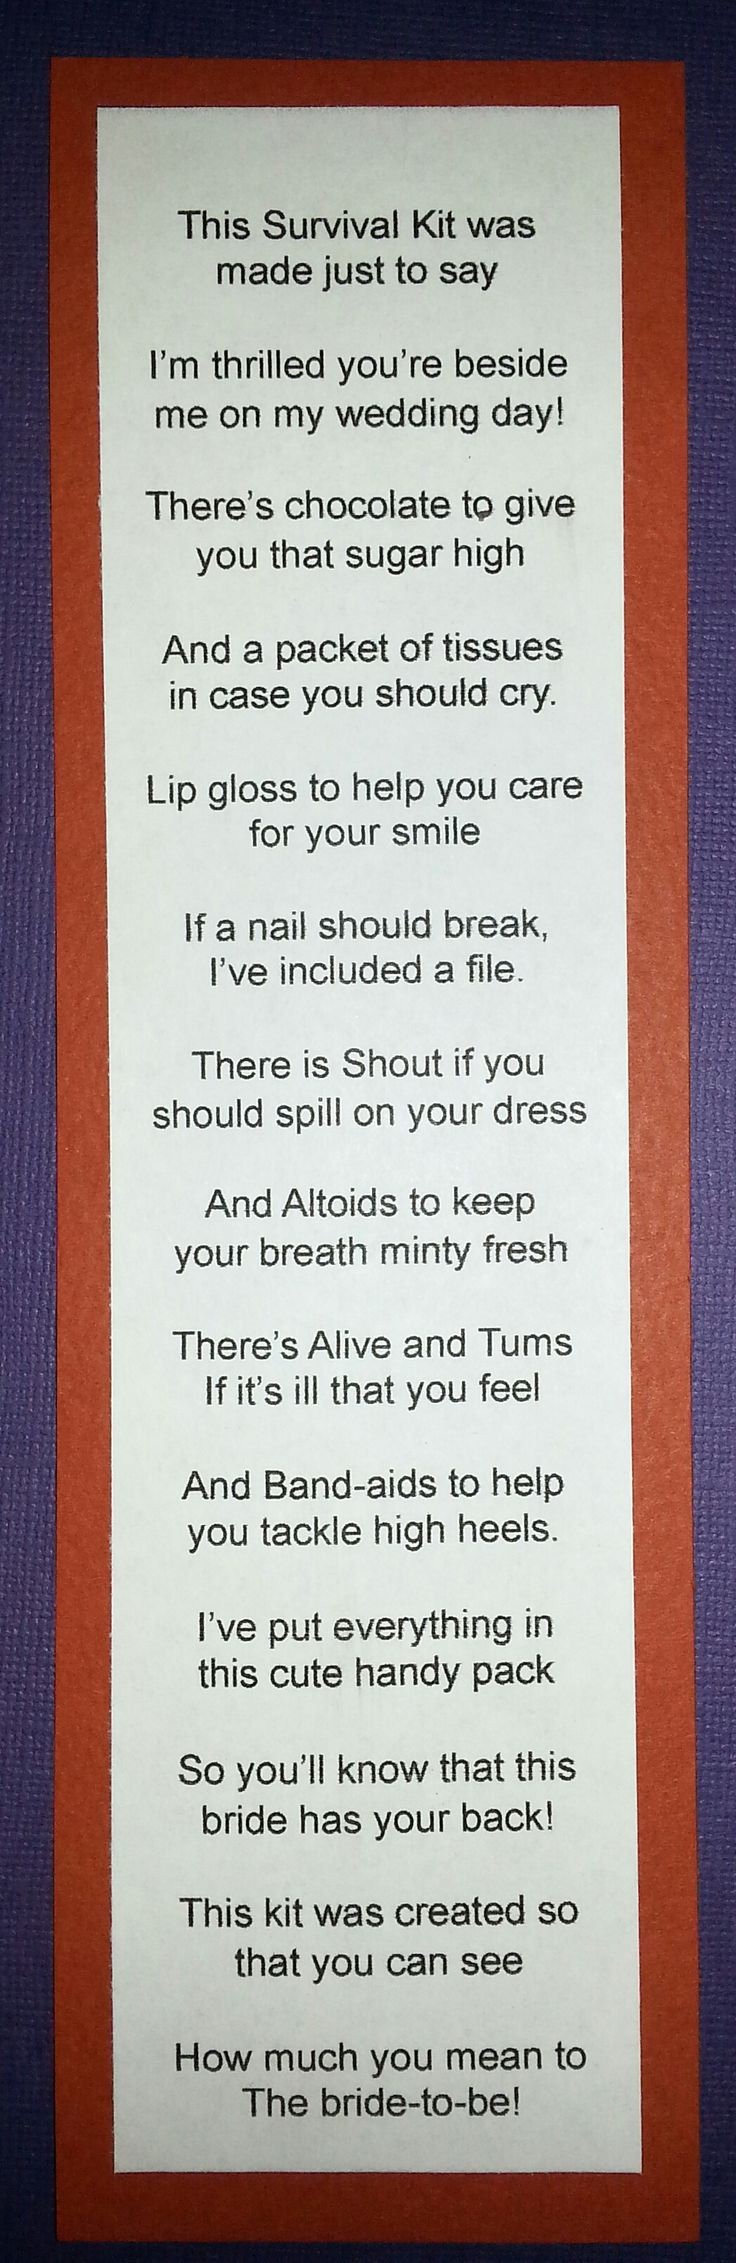 Cute Saying for Bridal Party Survival Kits